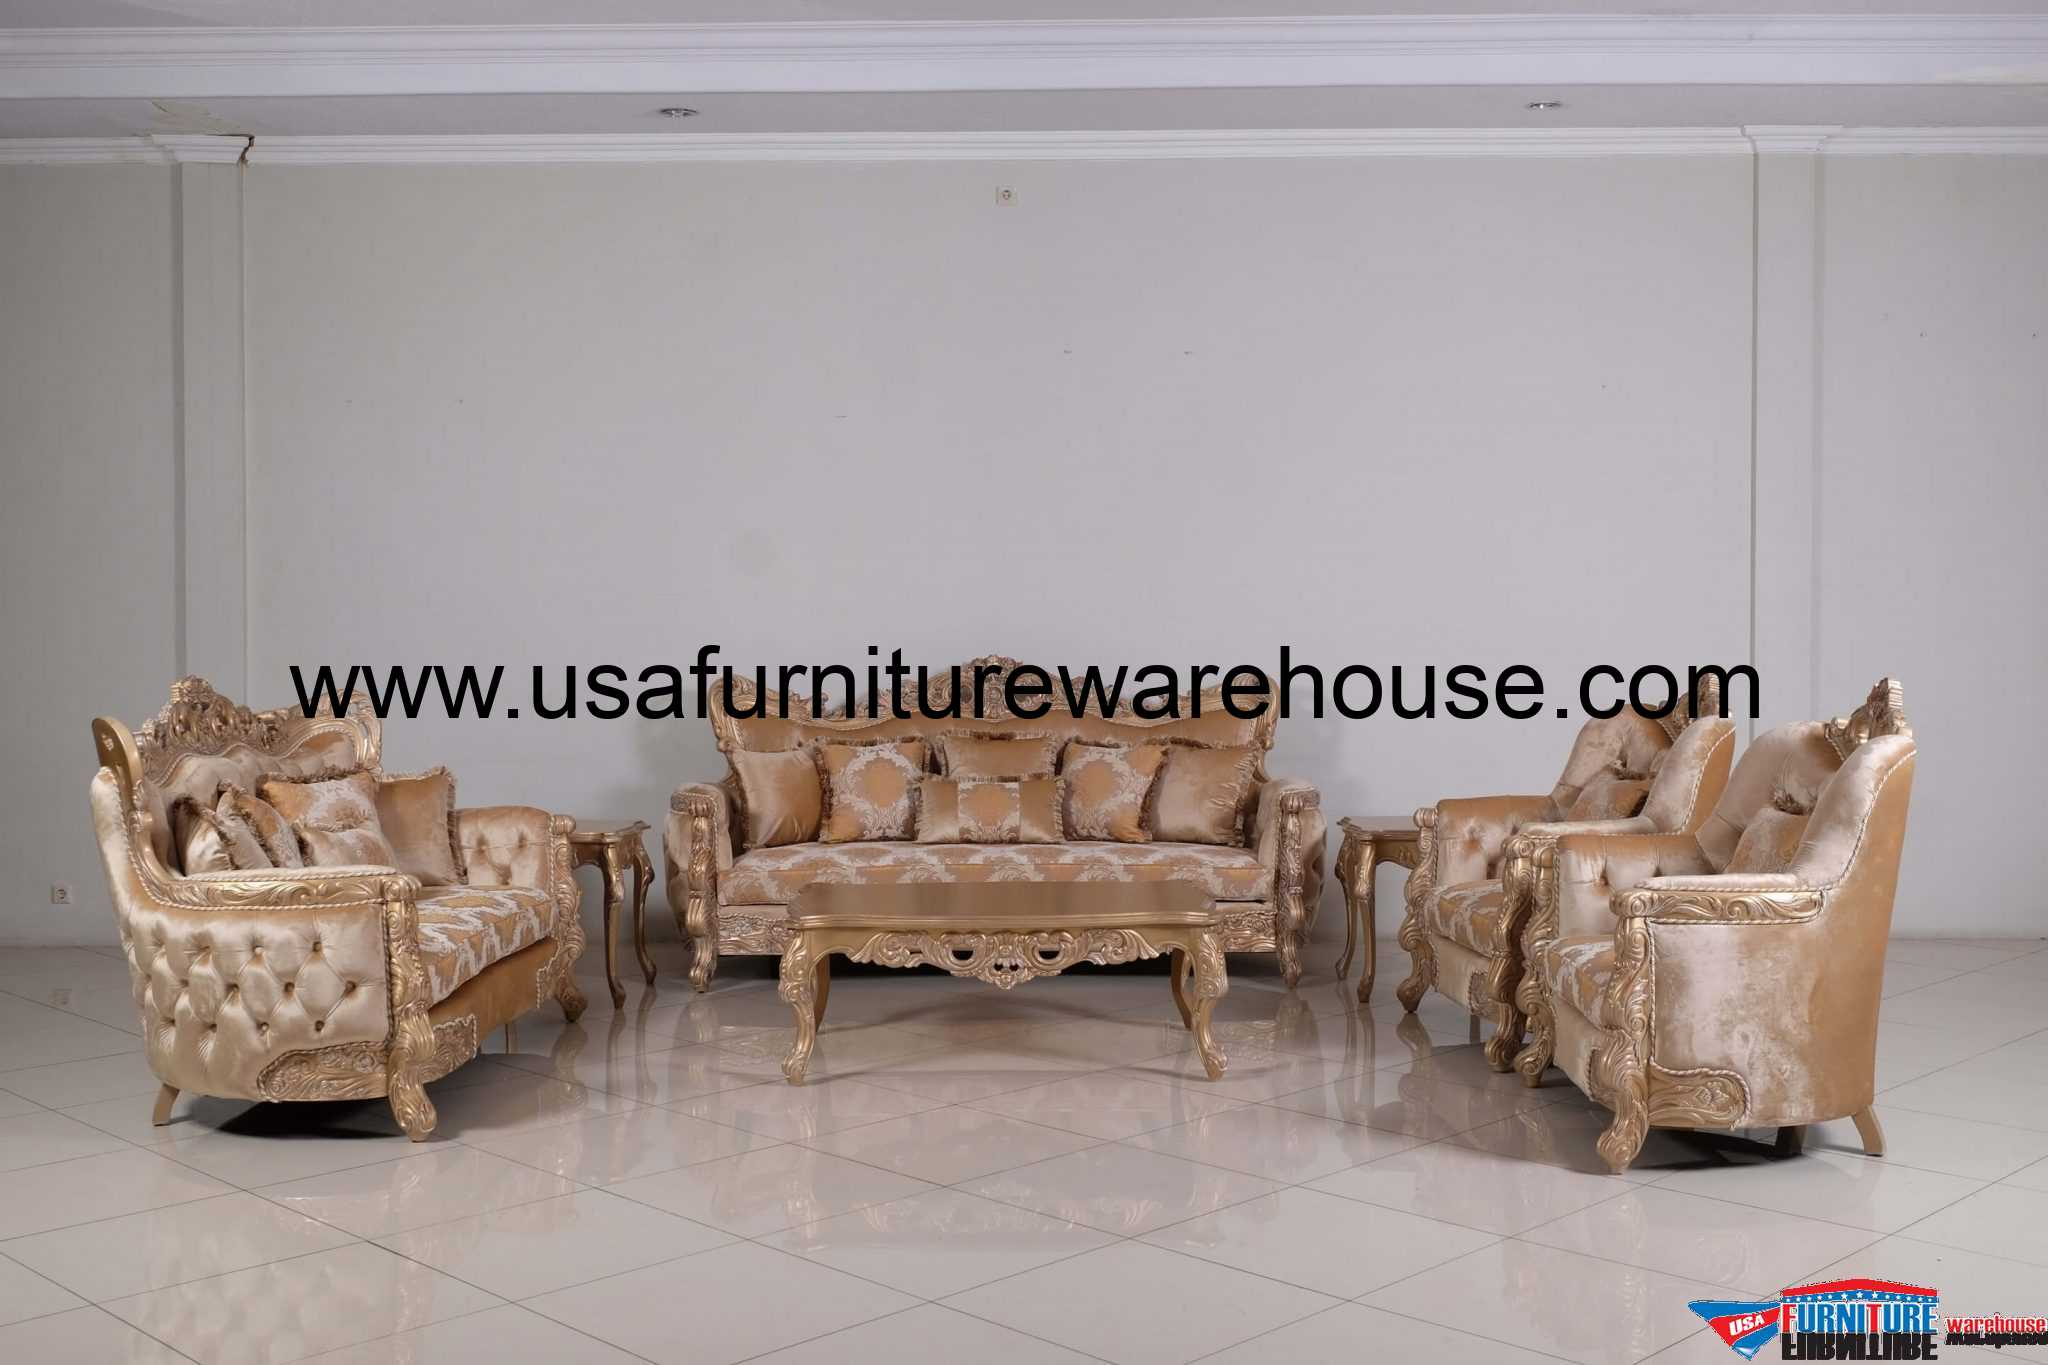 European Furniture Imperial Palace Sofa Usa Furniture Warehouse